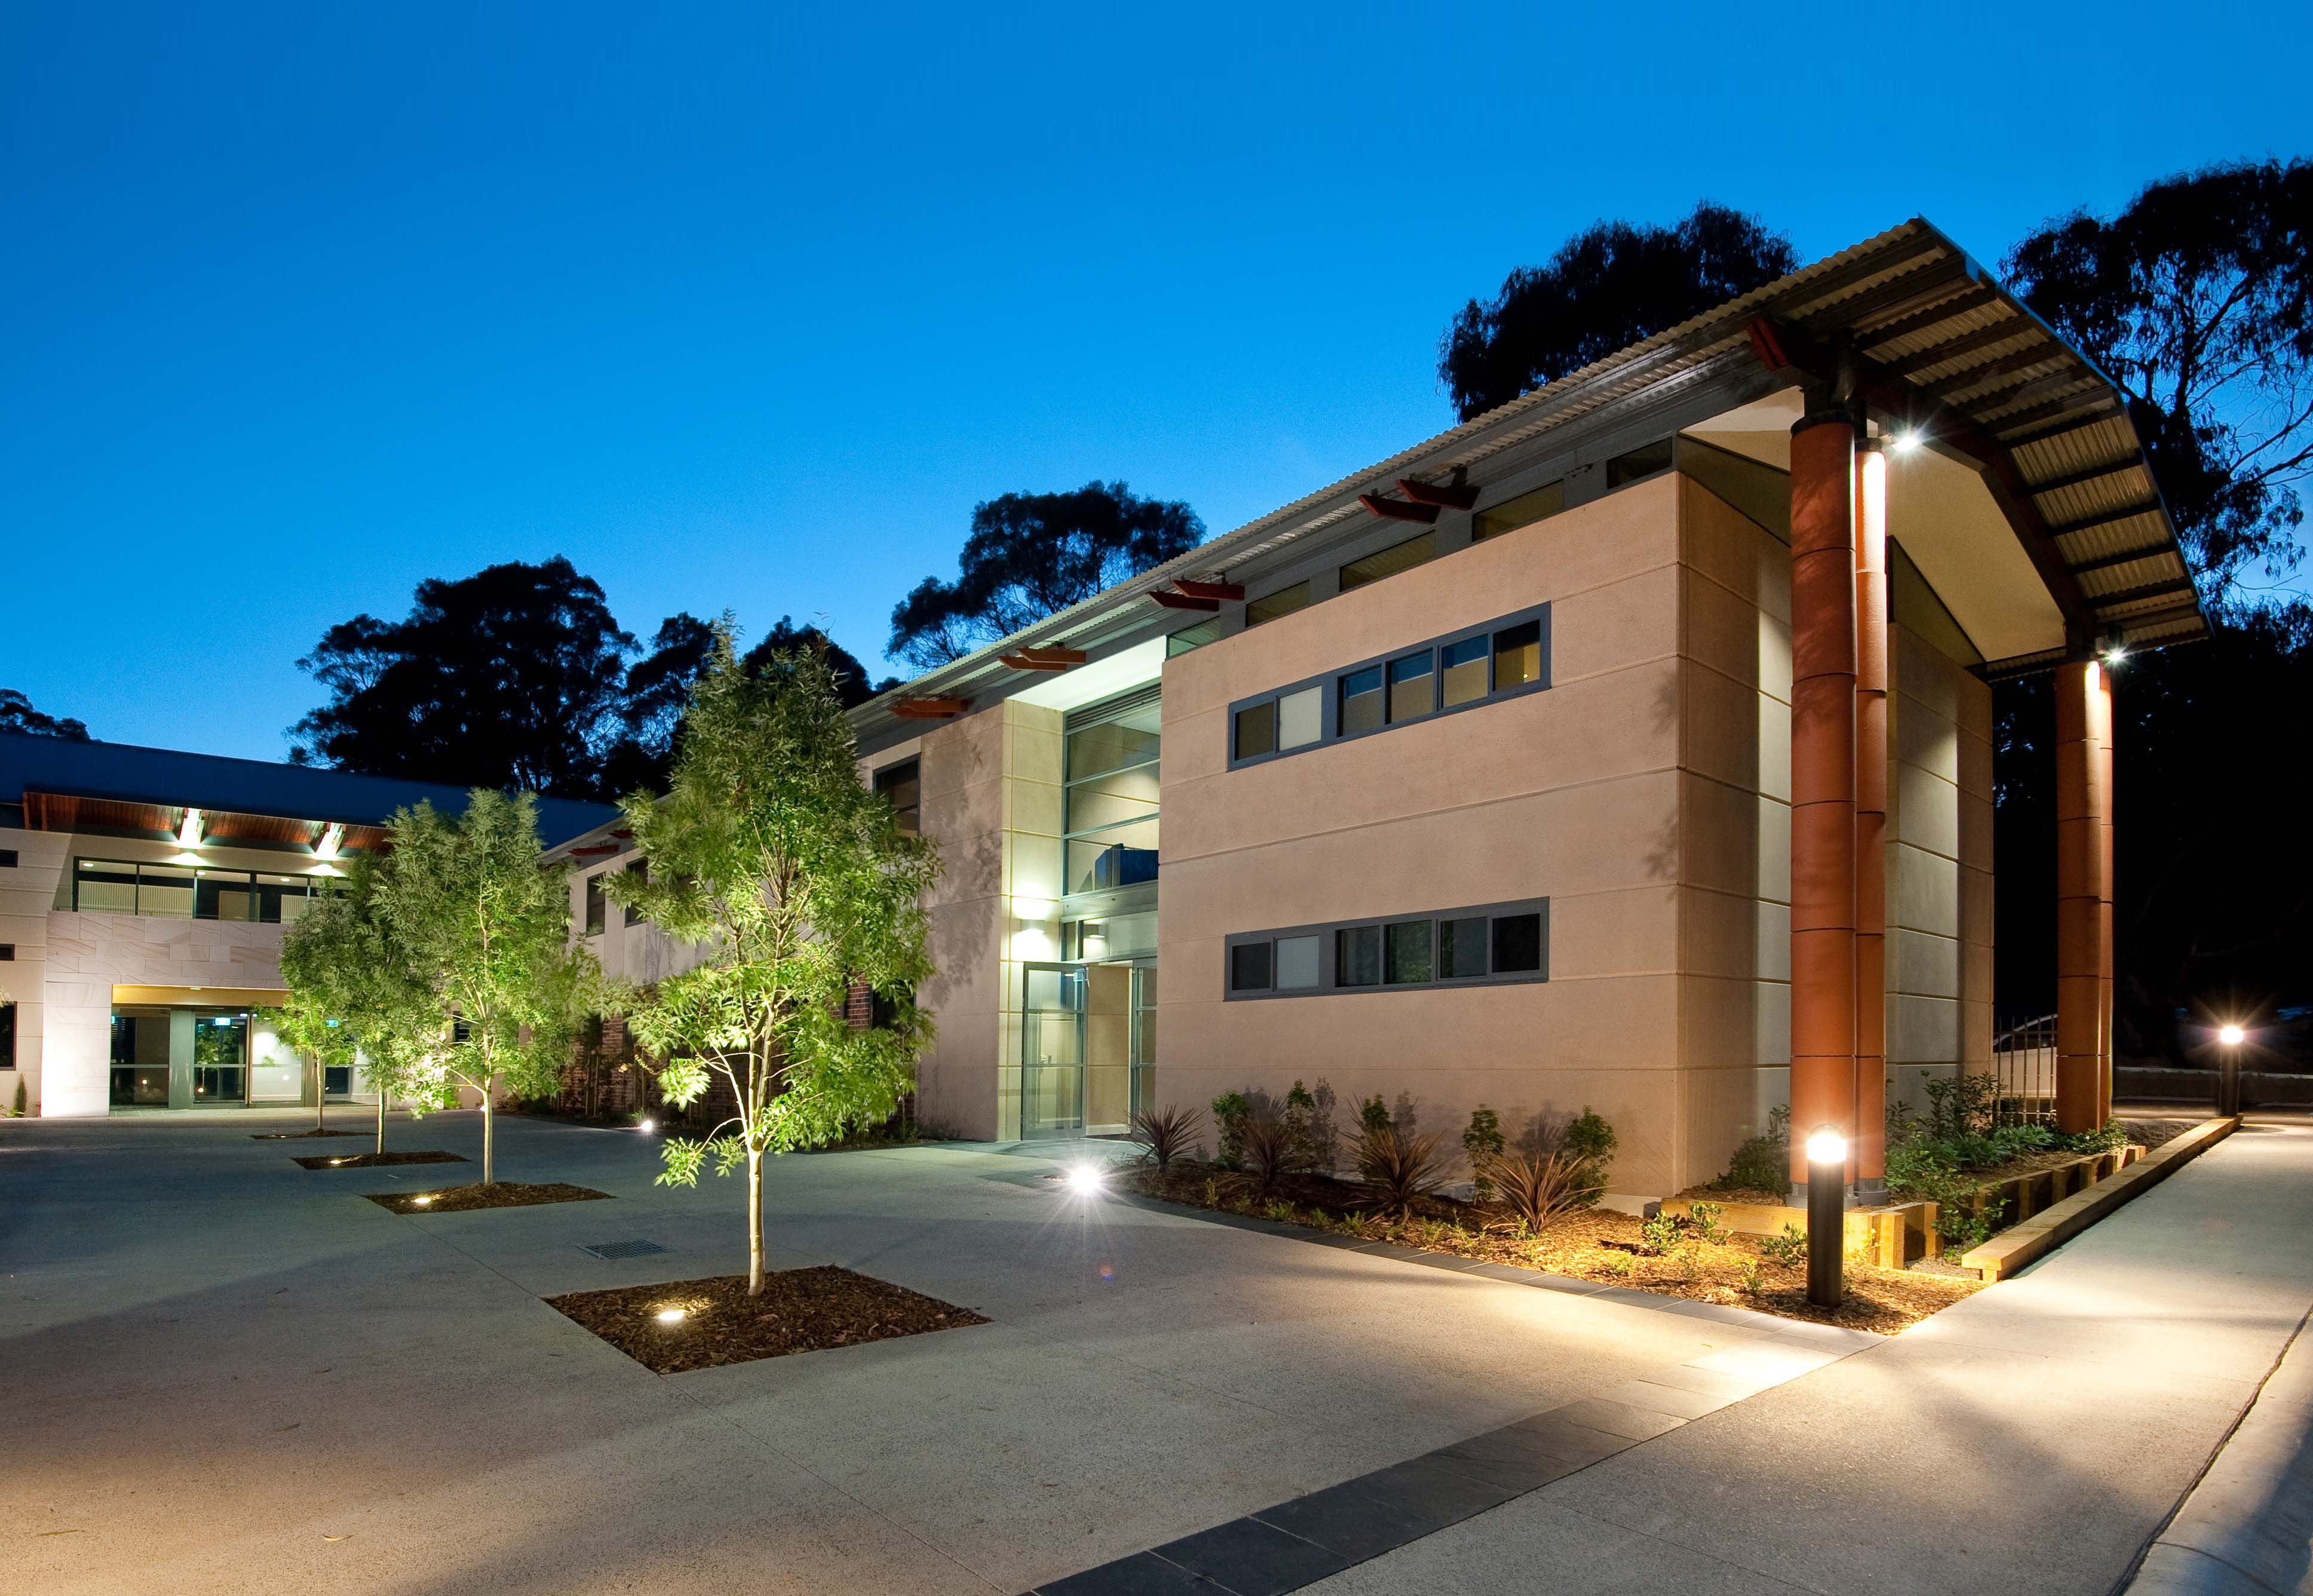 House design nsw - The Kings School Broughton Forrest House Parramatta Nsw The Design Of The New Boarding House